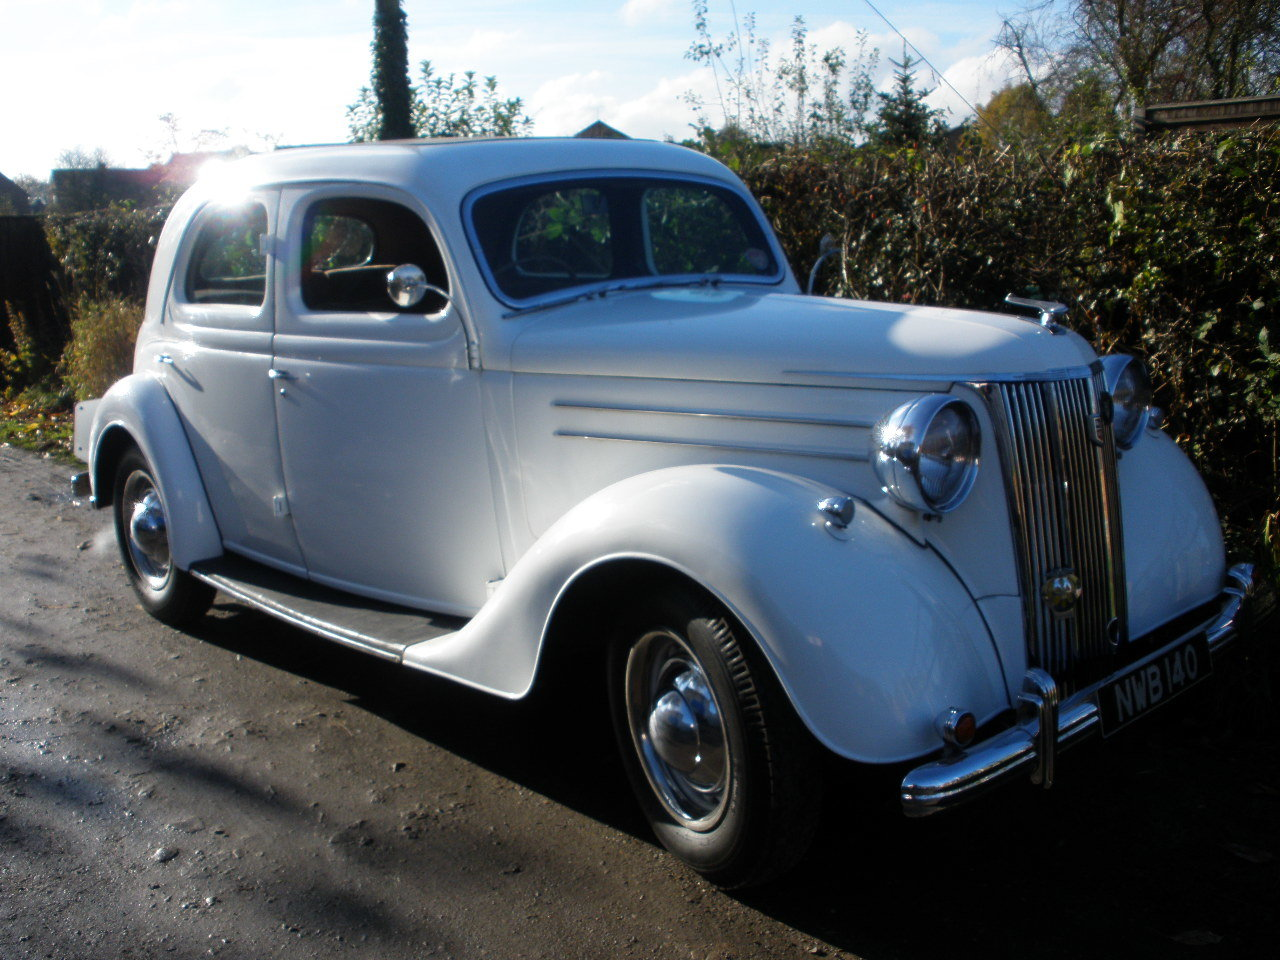 1951 Ford V8 Pilot For Sale (picture 1 of 6)